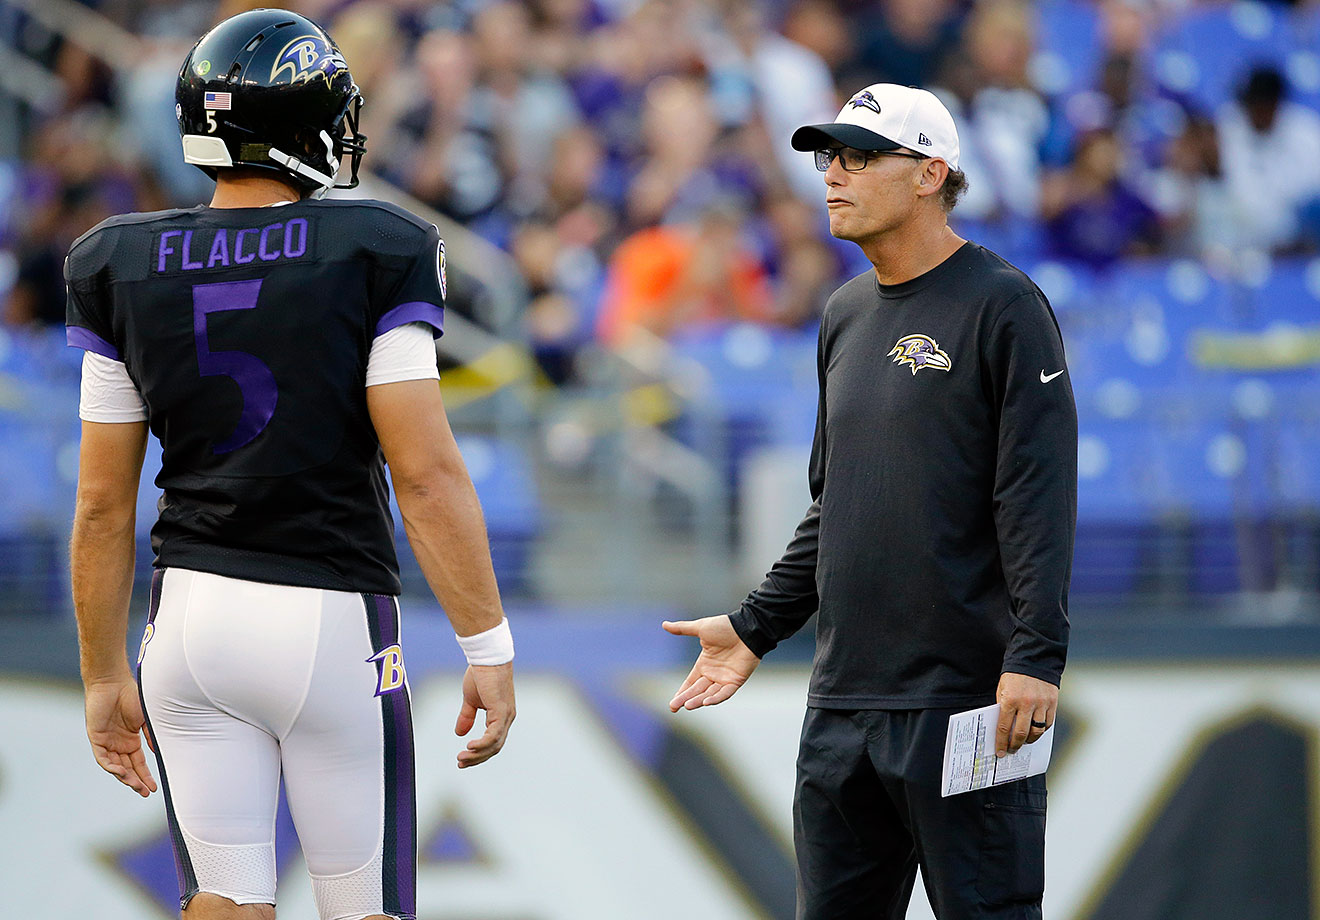 The Ray Rice suspension is finally behind them, but so is offensive coordinator Gary Kubiak, who helped Justin Forsett lead the NFL with 5.1 yards per carry last year. New OC Marc Trestman has a rookie tight end, and the Ravens' top wide receiver is 5-foot-9 and 36 years old — and he wants you to get off his lawn.